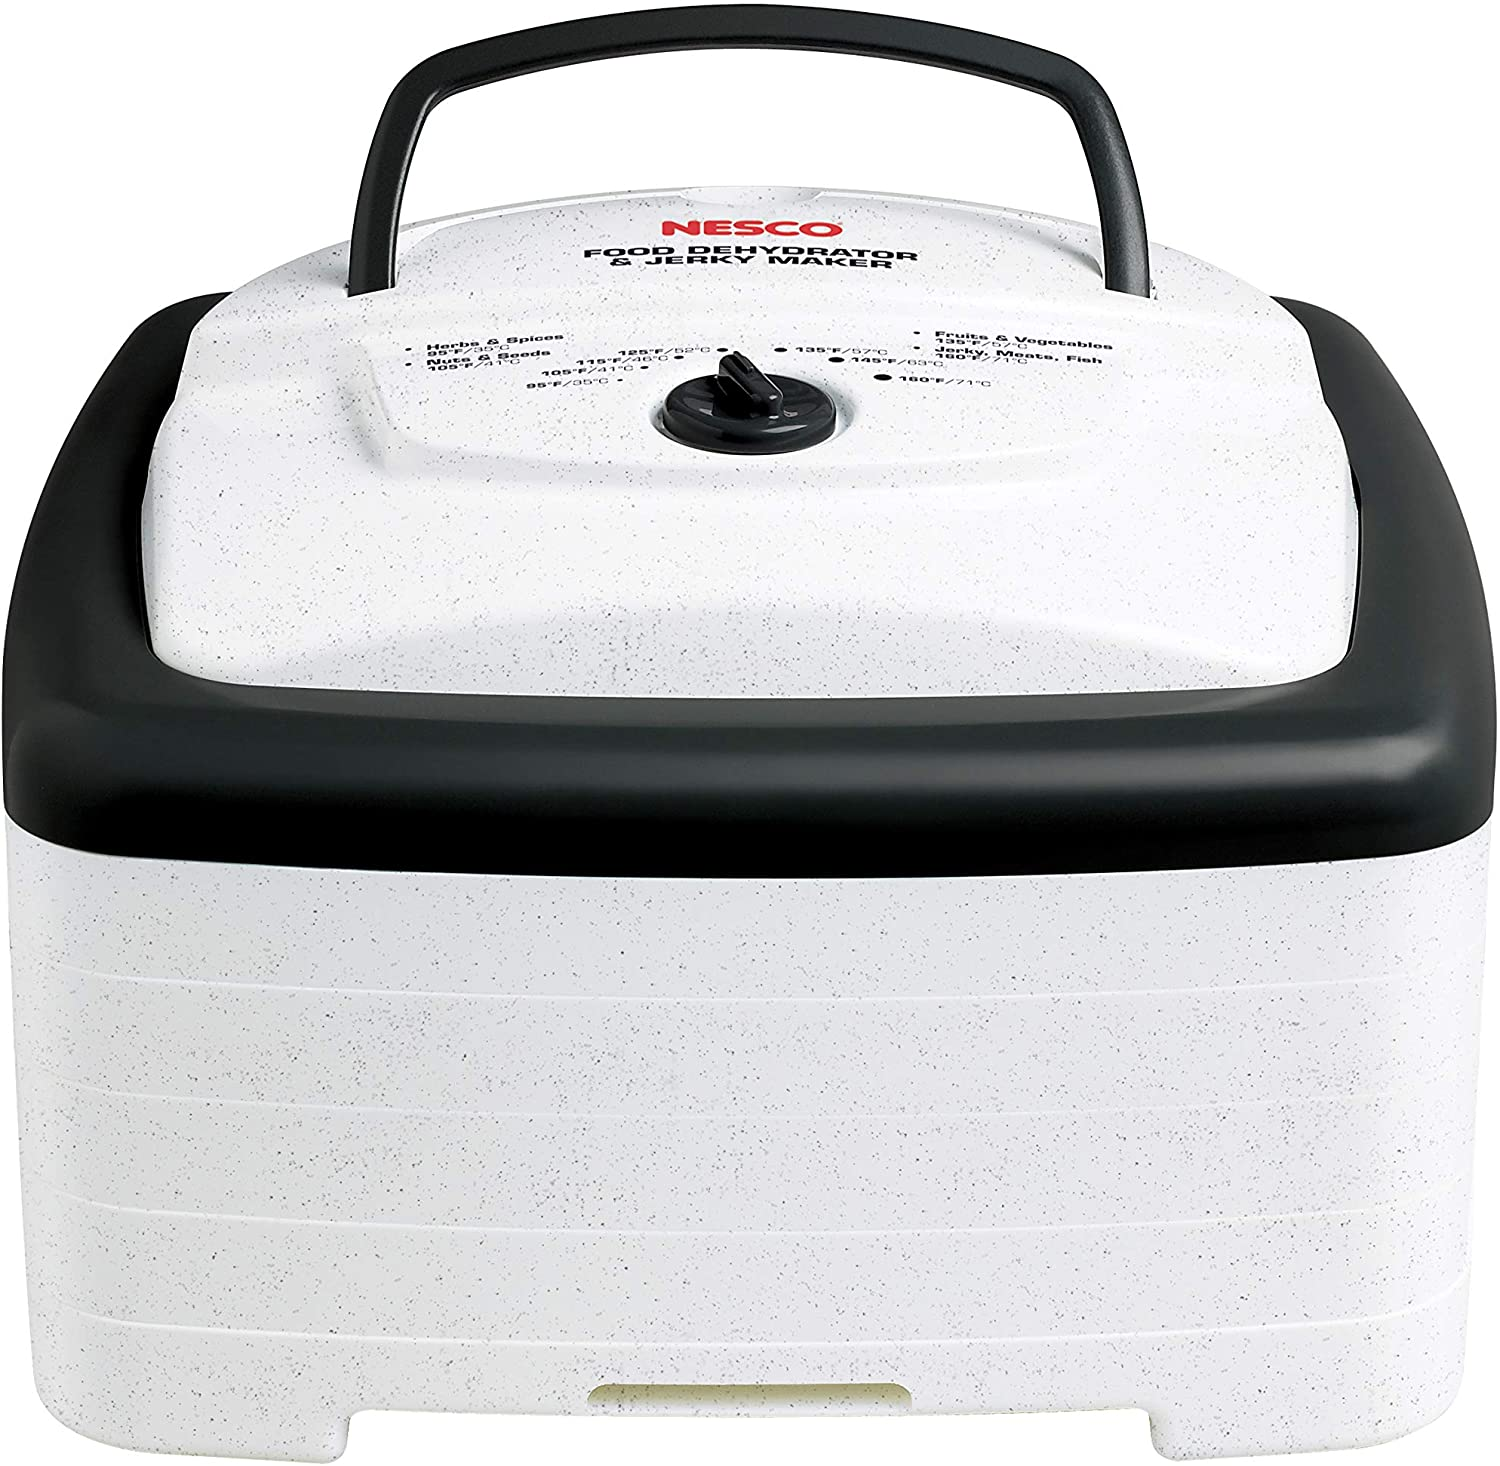 Nesco FD80A Food and Jerky dehydrator, 15.25 x 10.25 x 15.63 inches, White